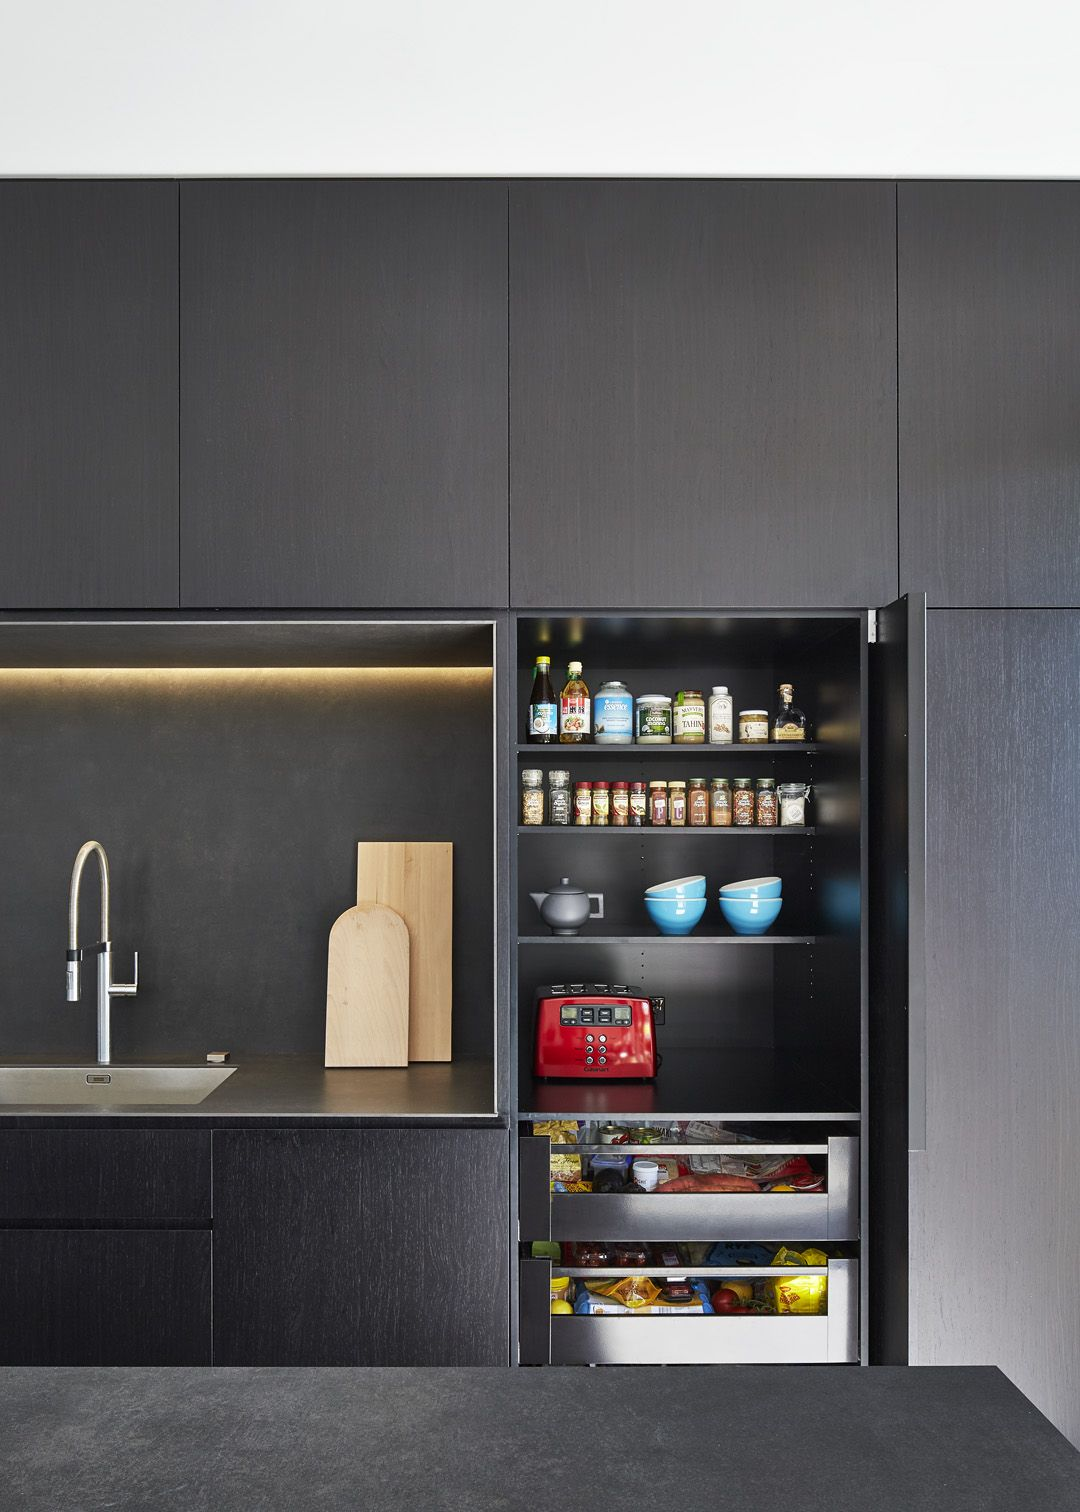 pantry light in the back wall kitchenns in 2019 k che moderne k che k chen ideen. Black Bedroom Furniture Sets. Home Design Ideas